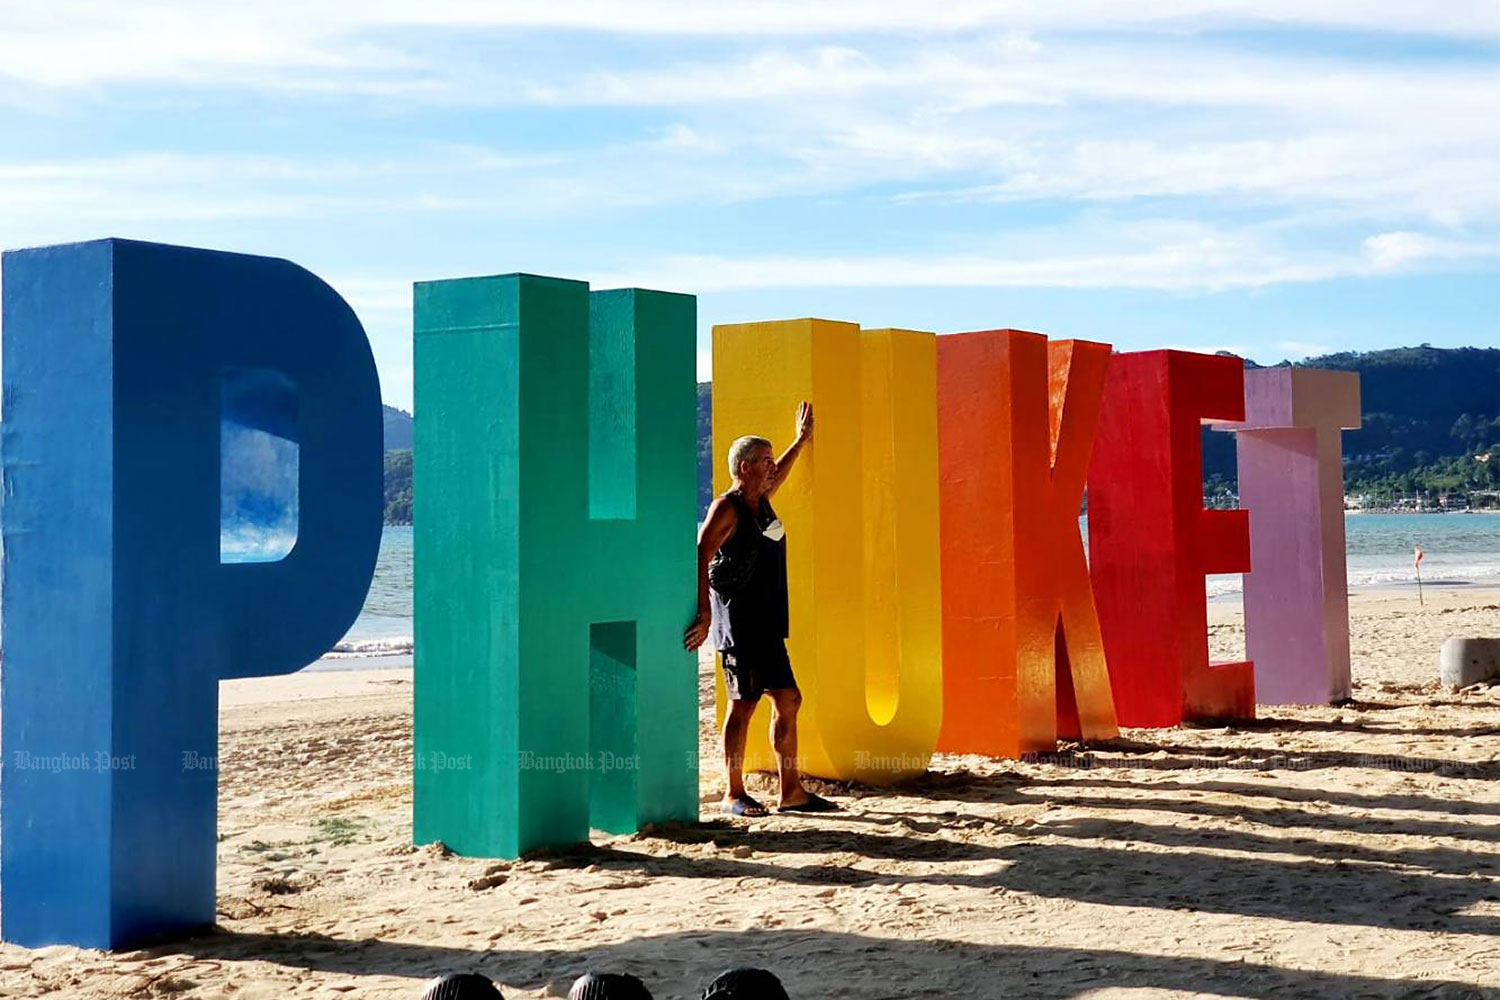 A tourist poses for a photograph in Phuket. The island reopened to international tourists following several months of travel restrictions due to Covid-19.